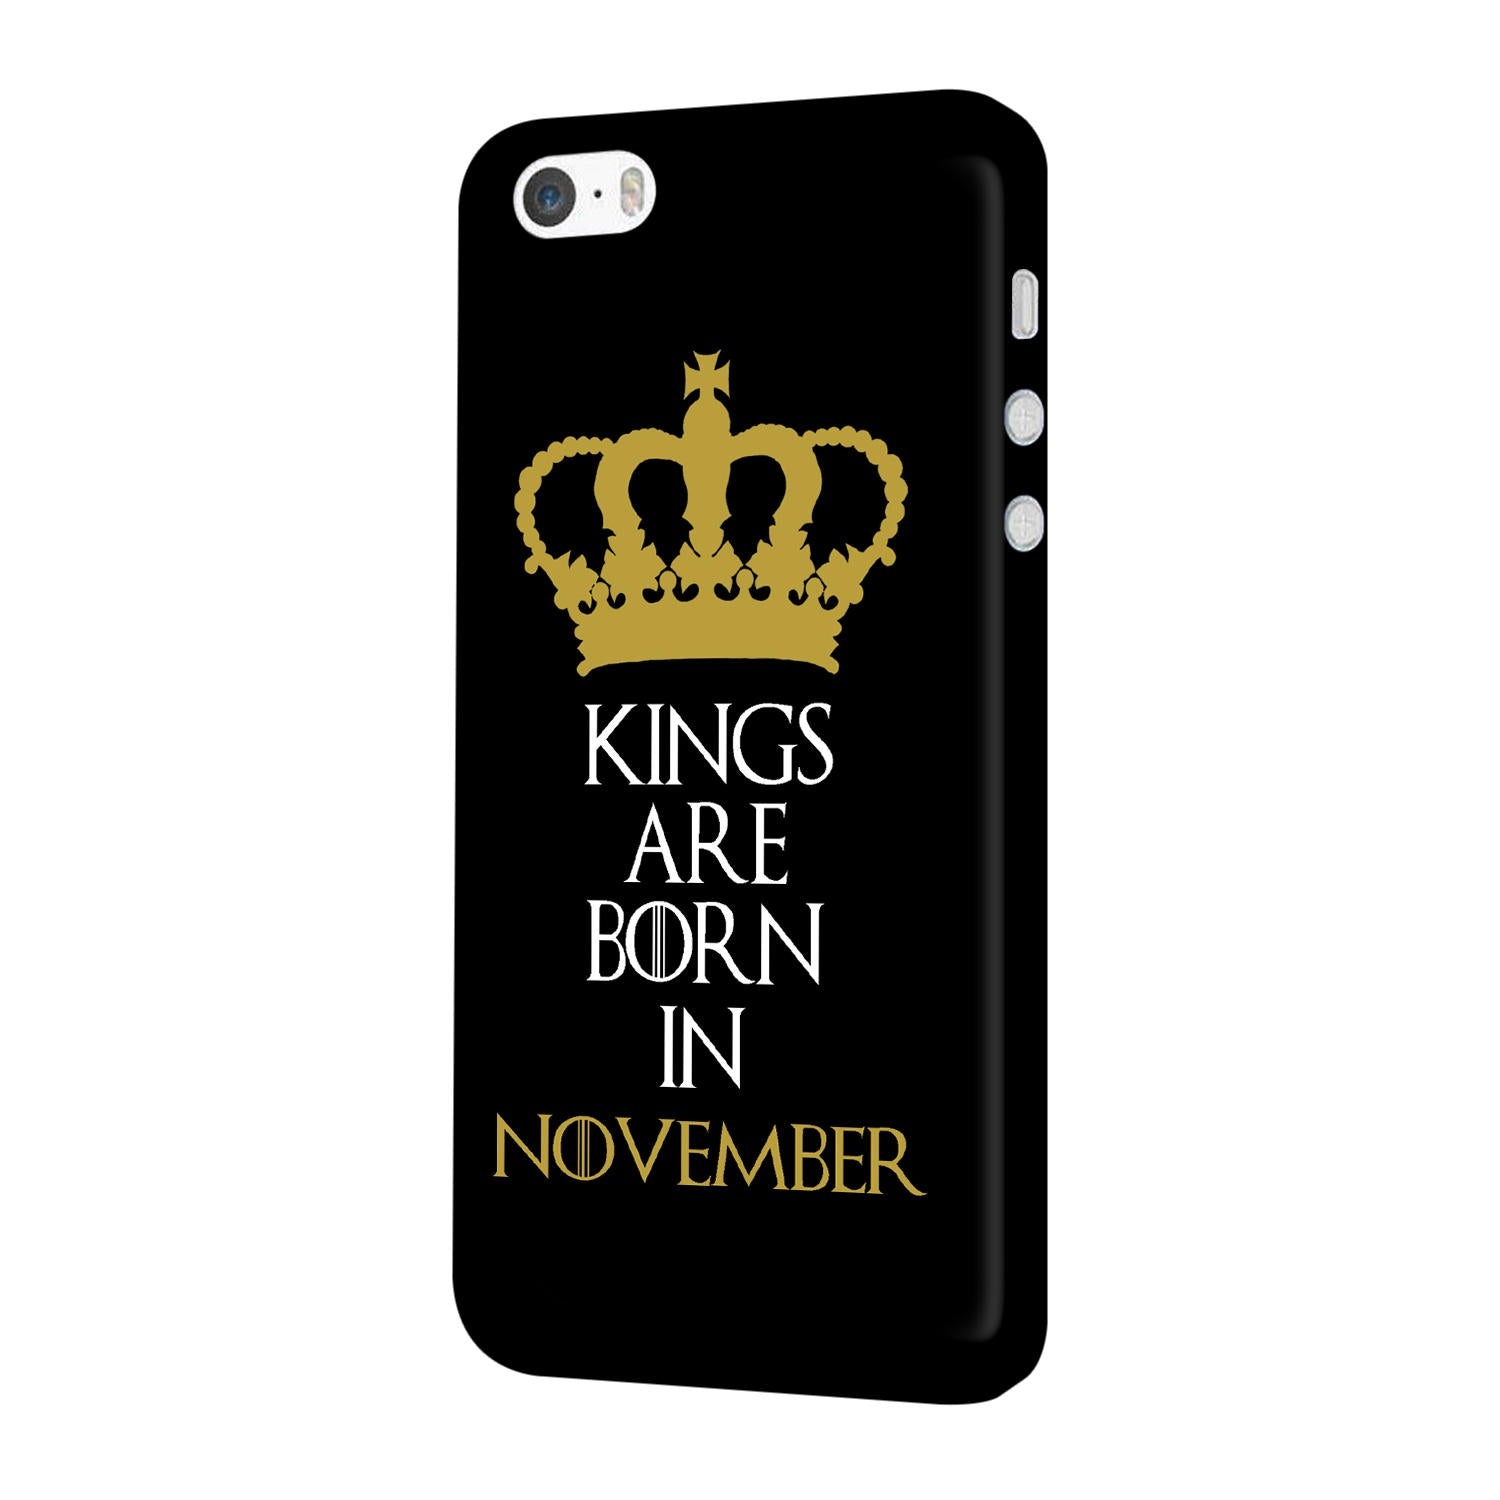 Kings November iPhone 5 Mobile Cover Case - MADANYU